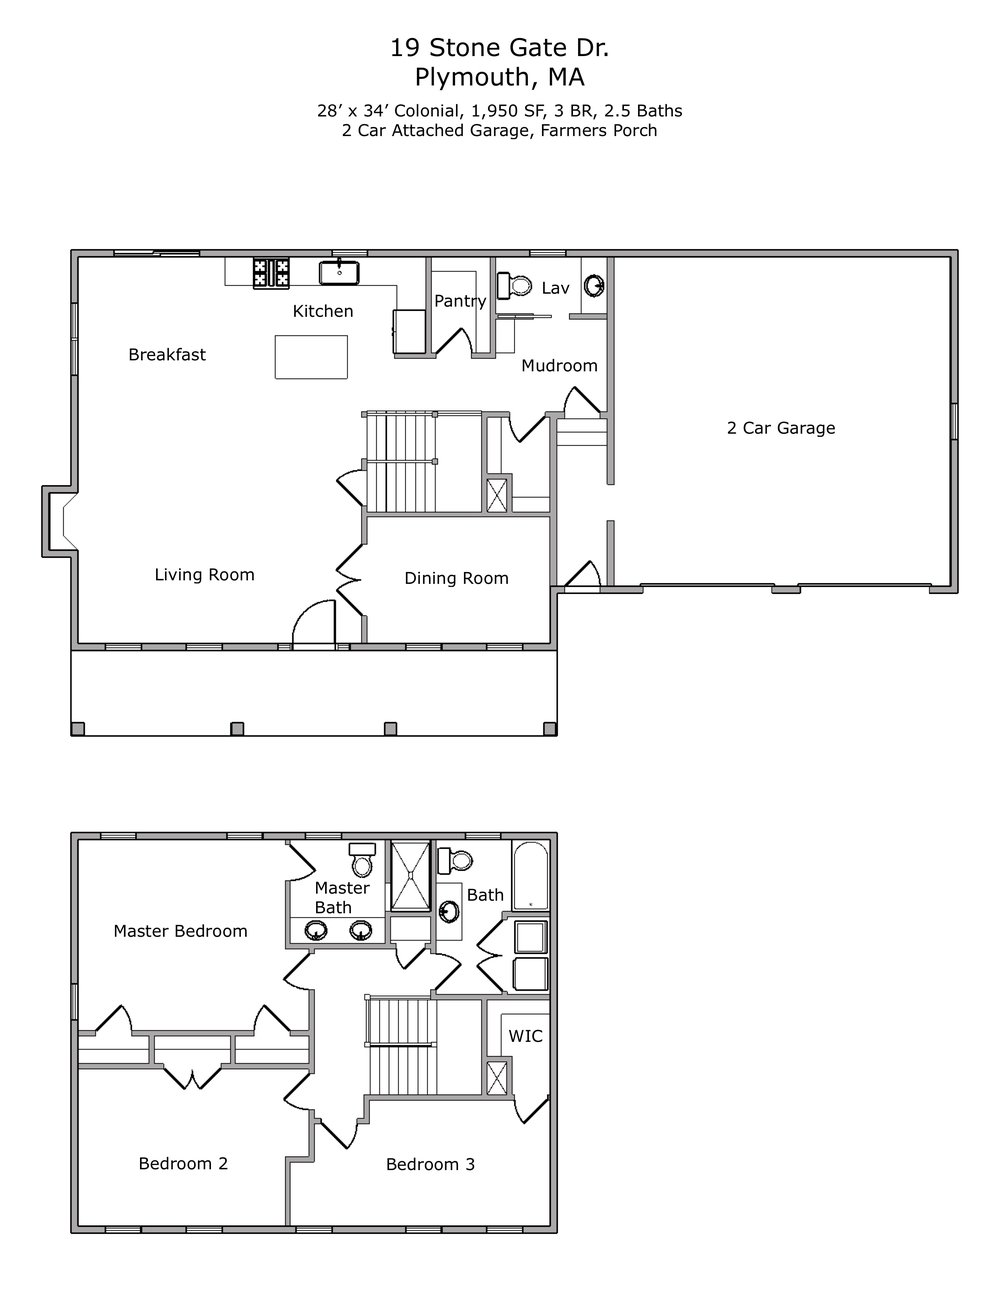 2019-01-03 - 19 stone gate dr layout plan.jpg